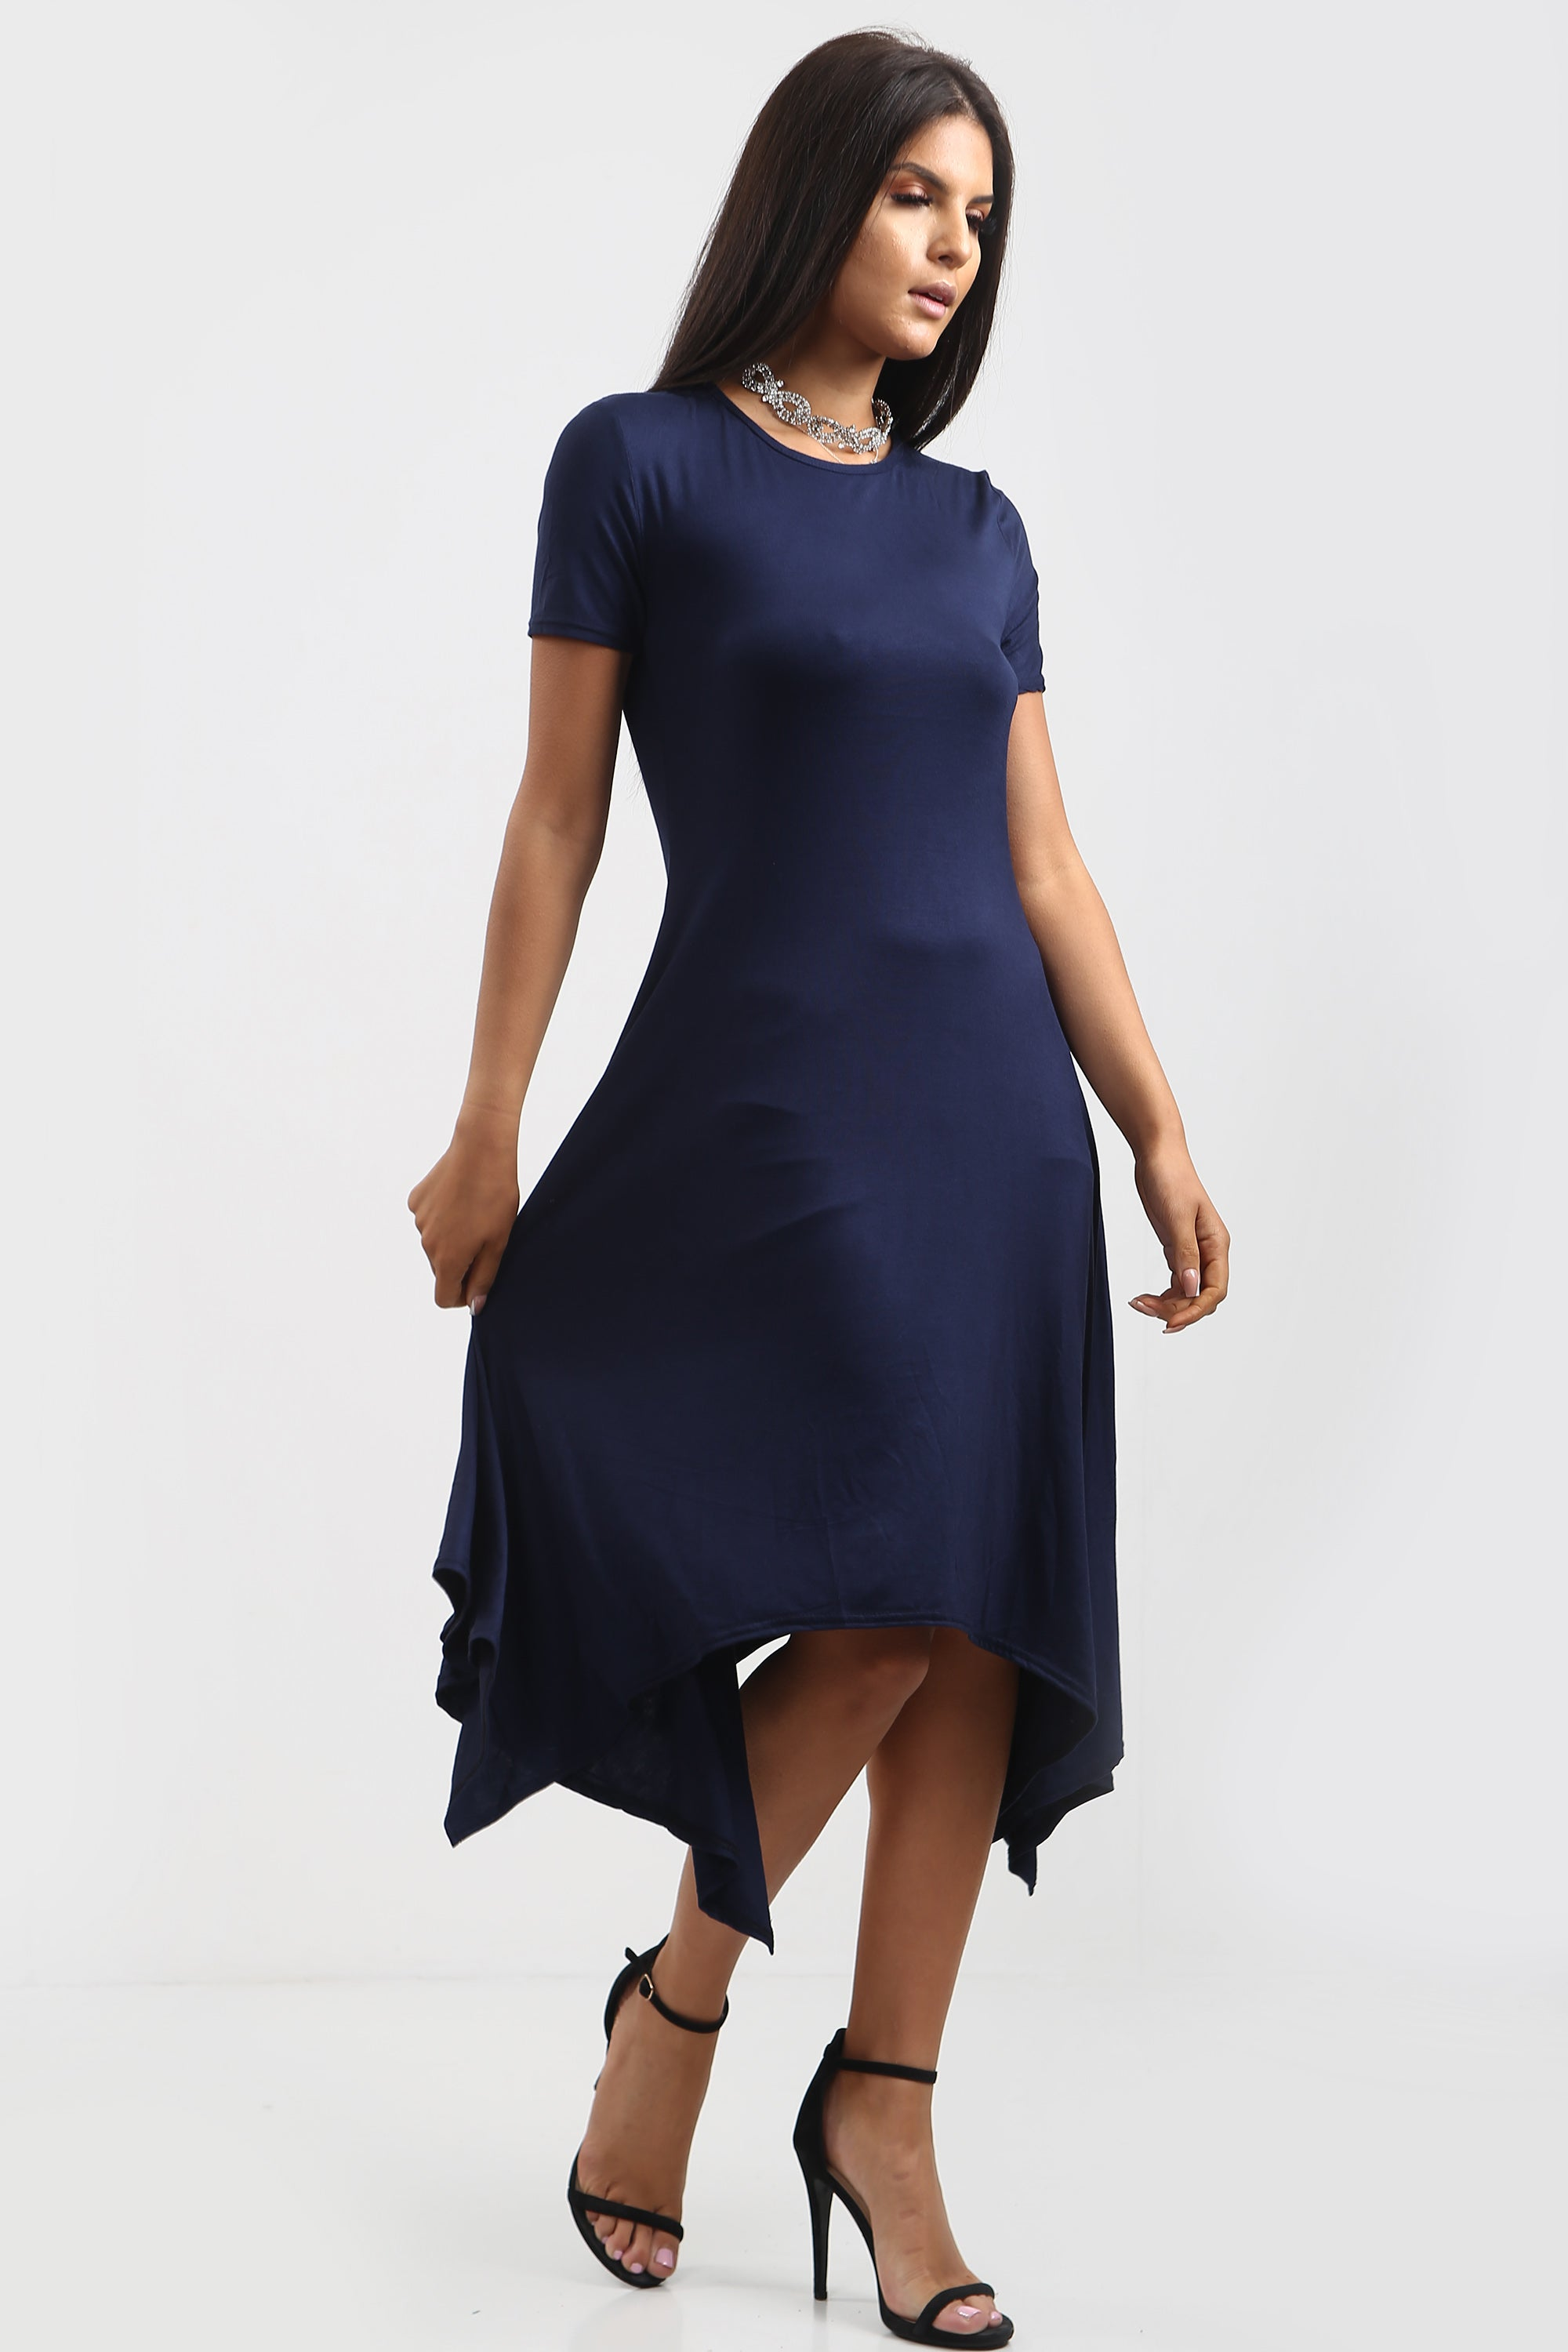 Chloe Hanky Hem Stretchy Swing Midi Dress